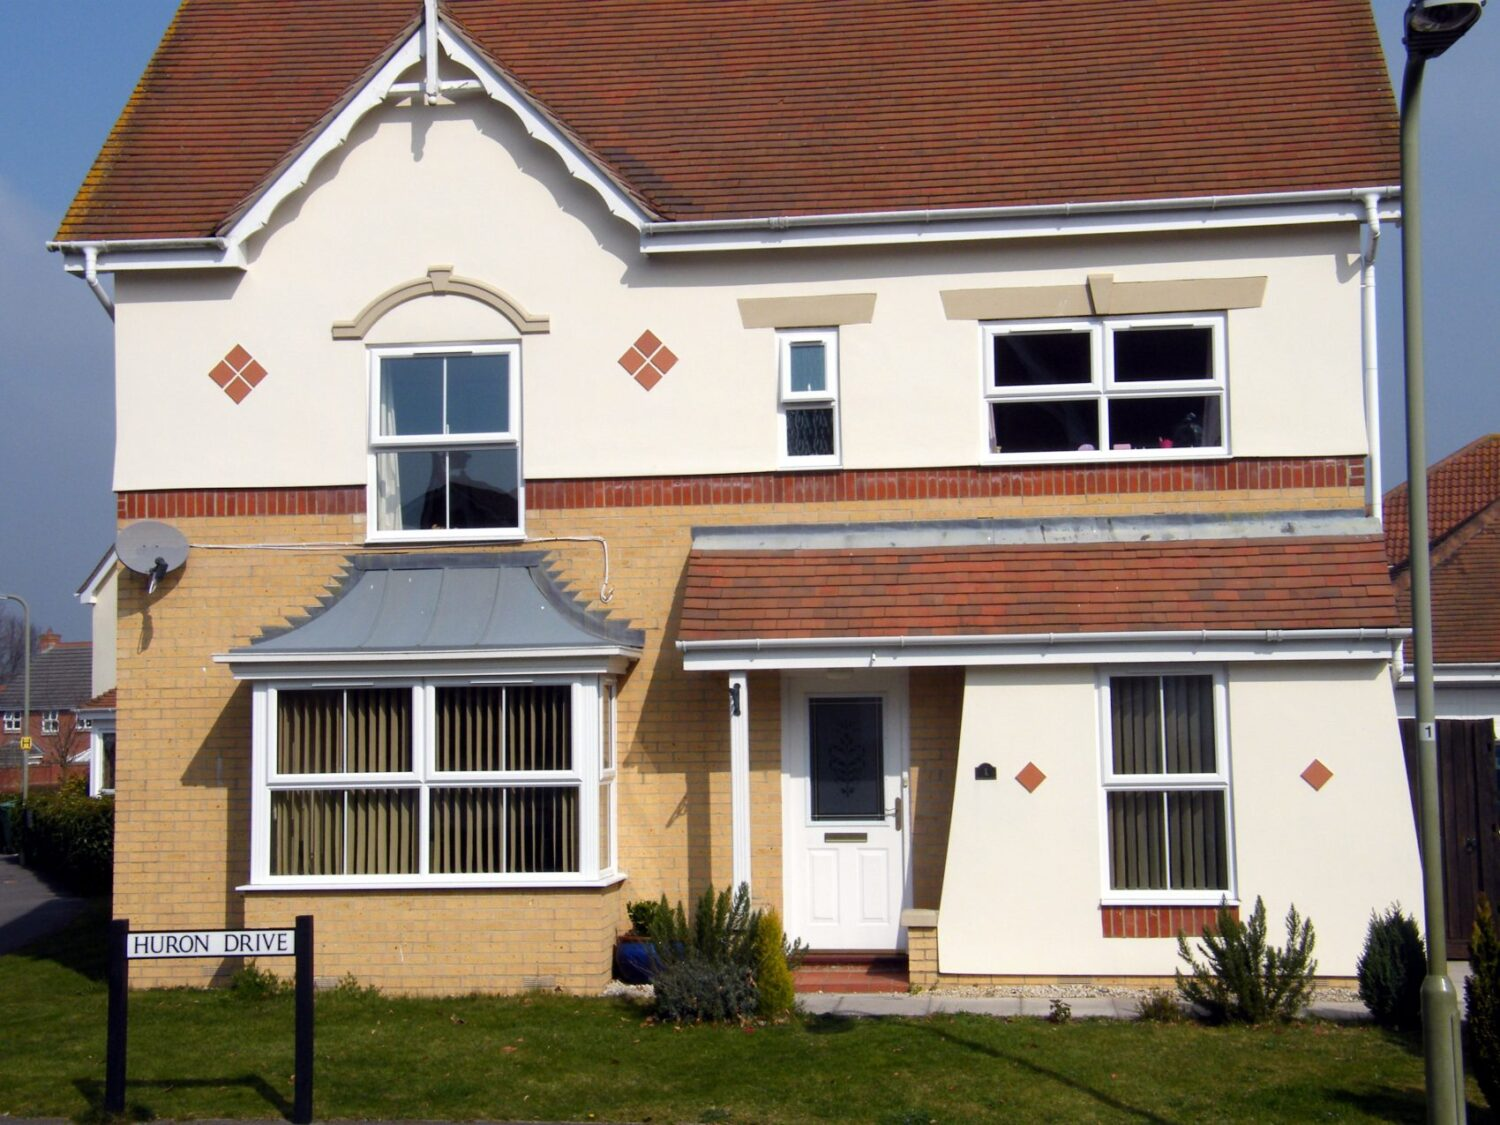 uPVC Windows & Doors from JSS Installations